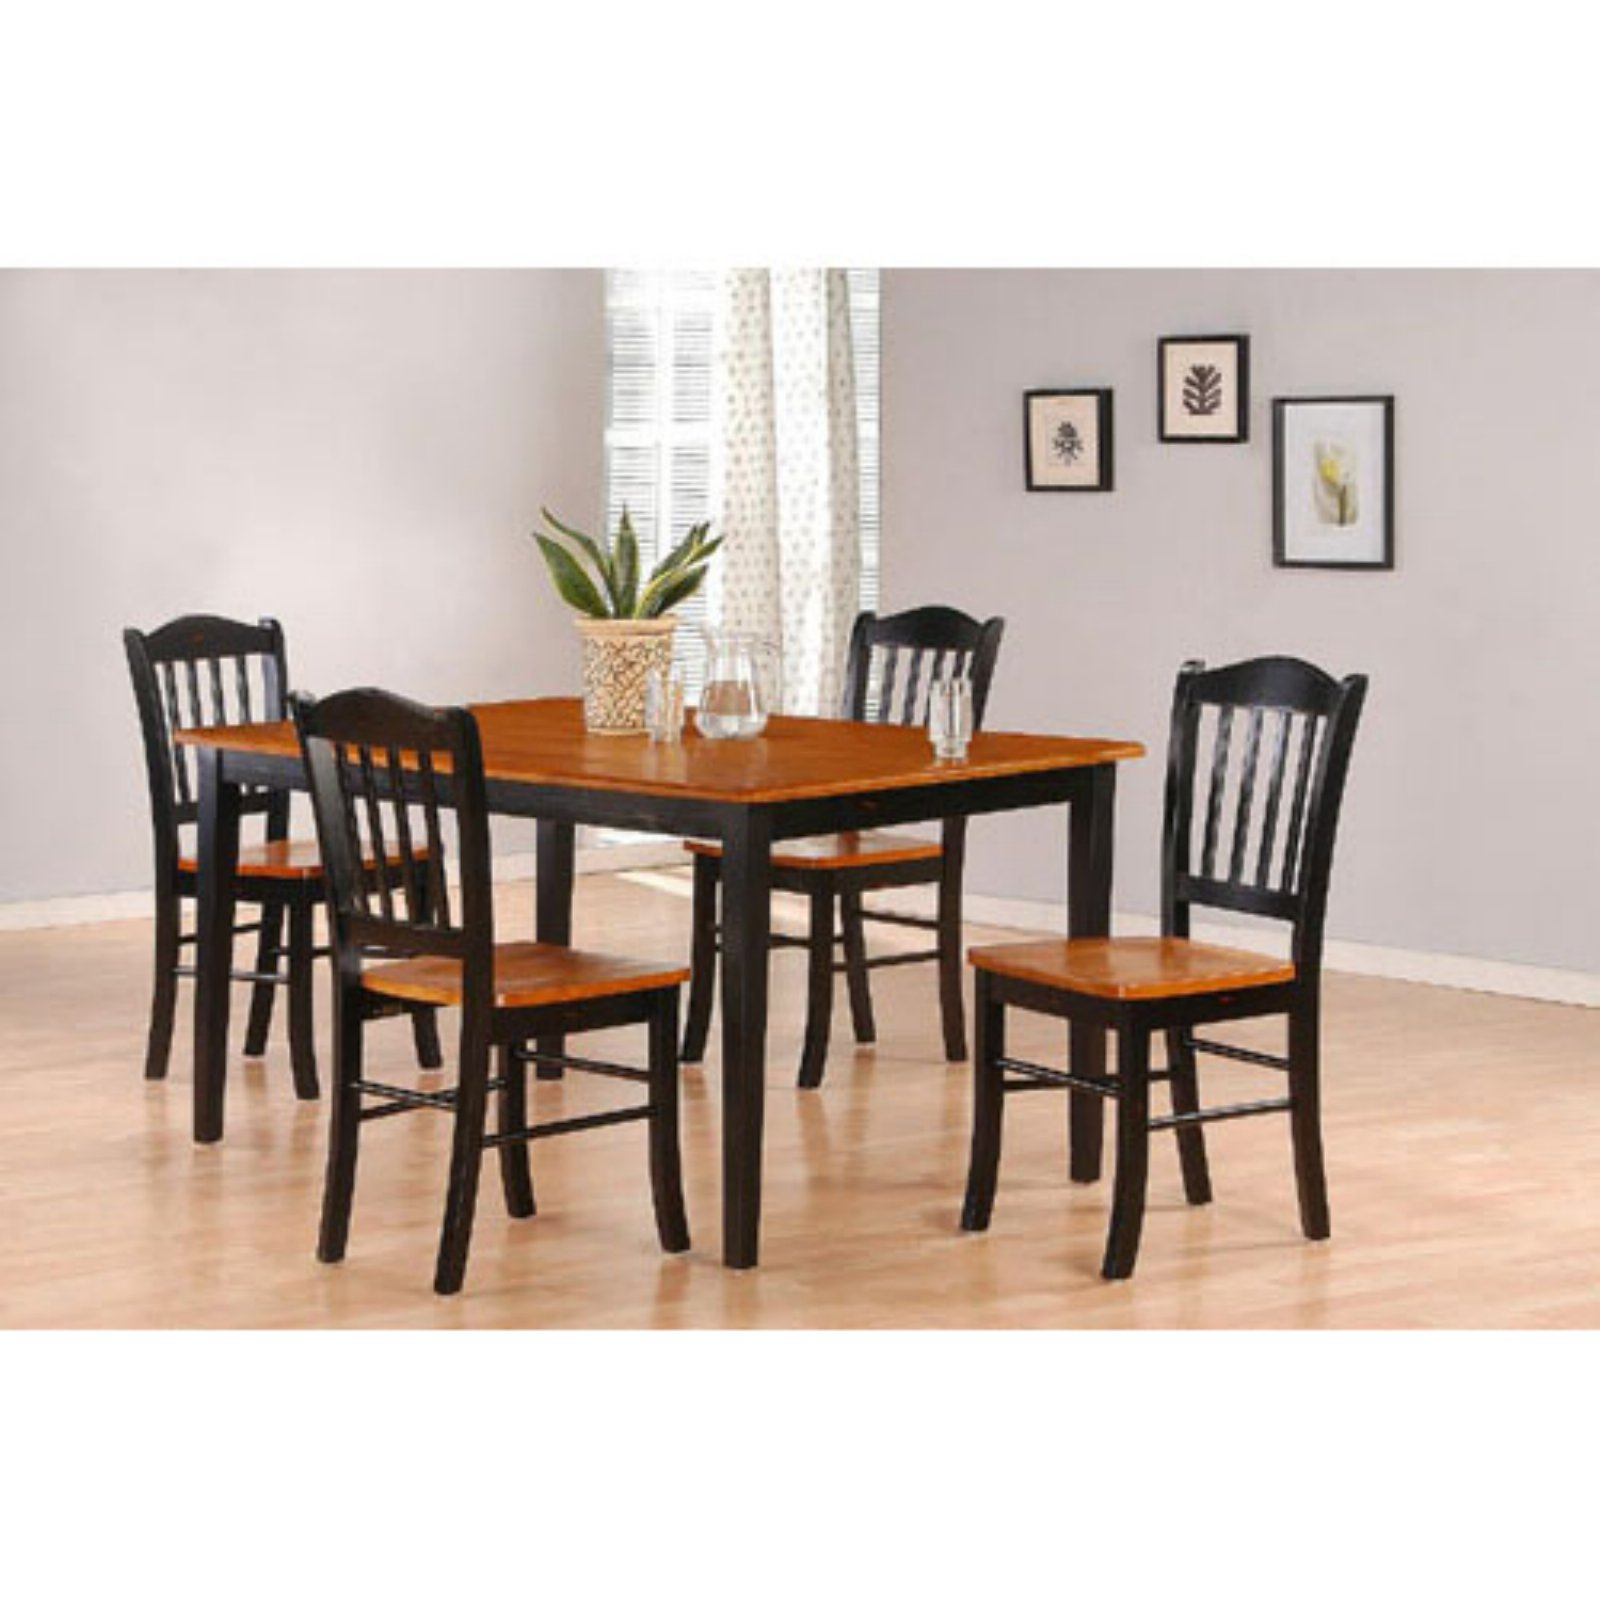 Dining Sets Black: Boraam 5-Piece Shaker Dining Set, Black/Oak